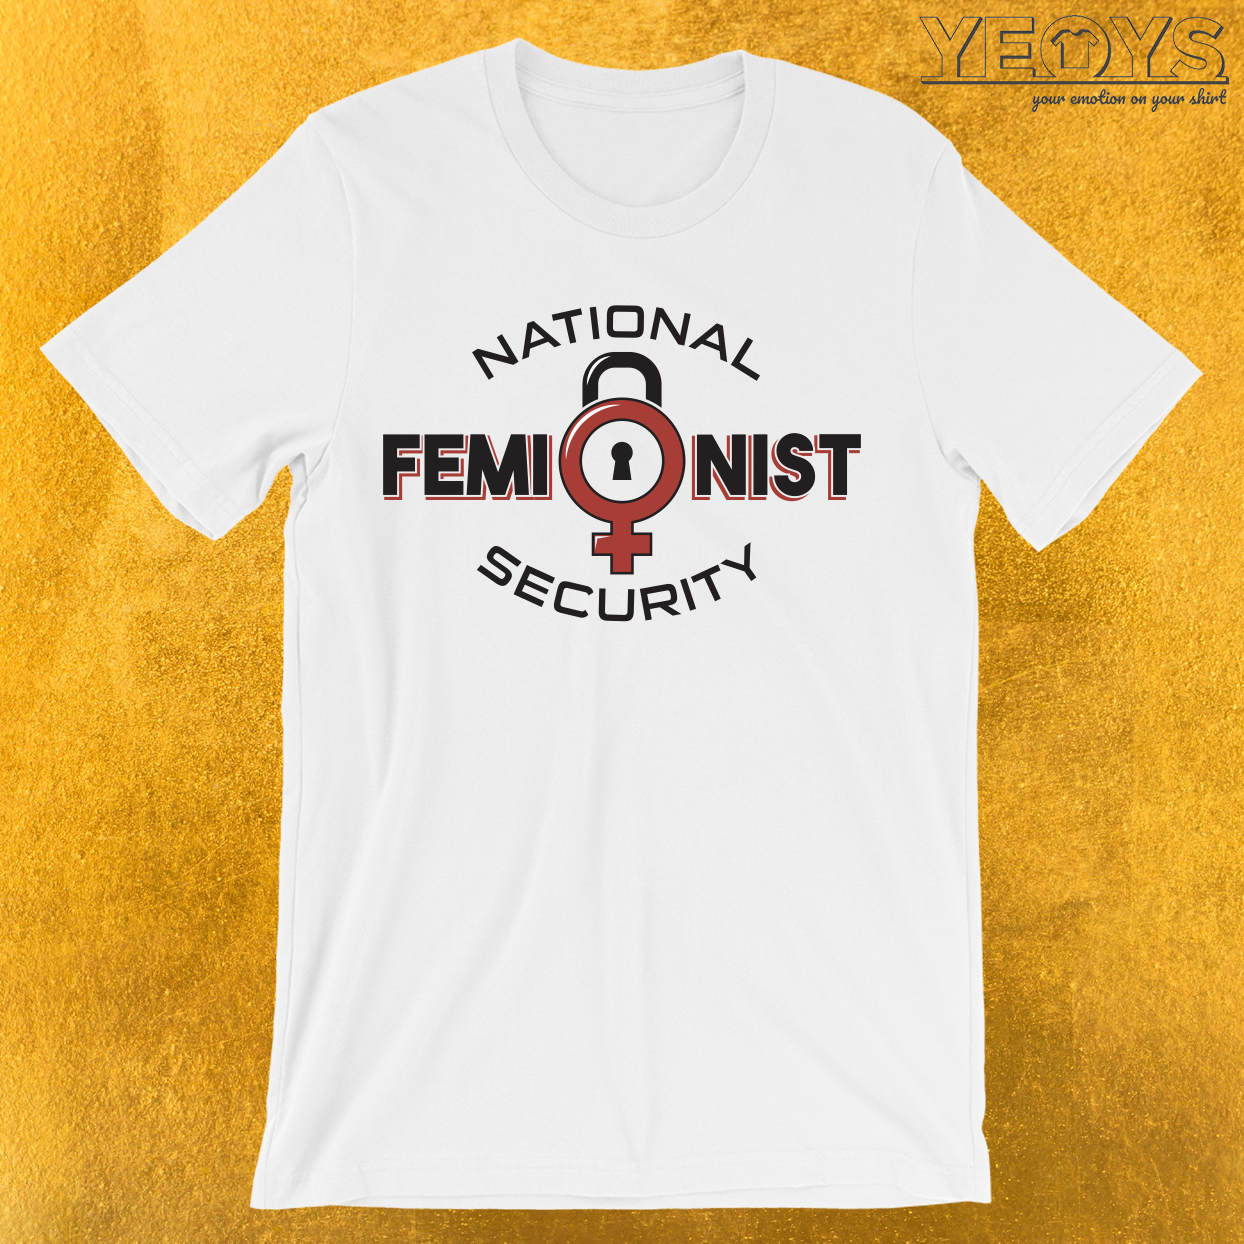 National Feminist Security T-Shirt